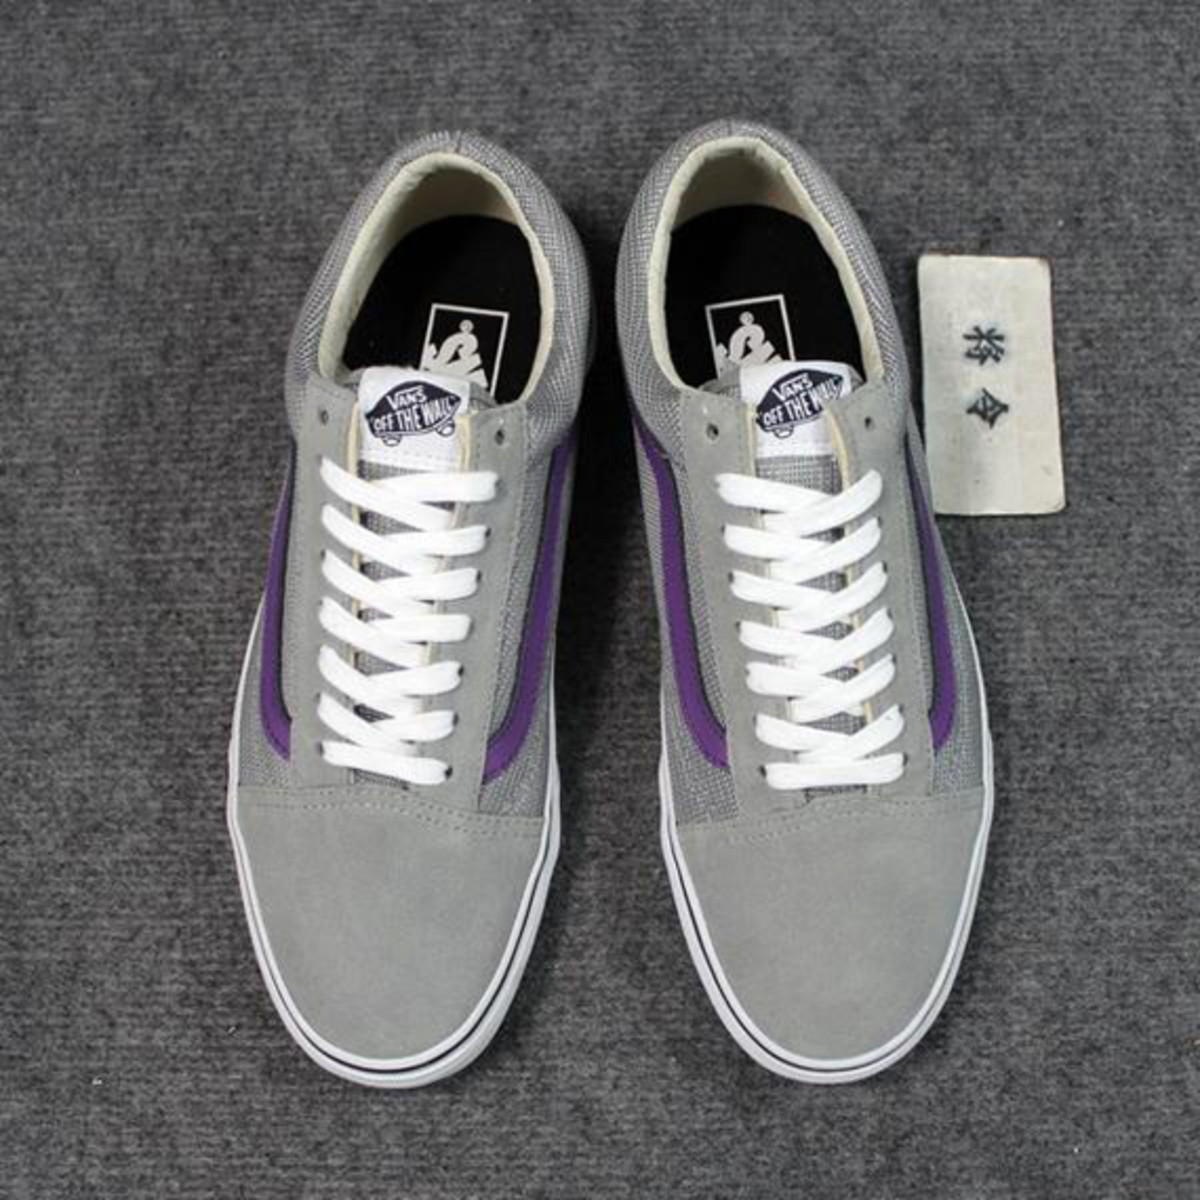 supreme-vans-old-skool-09